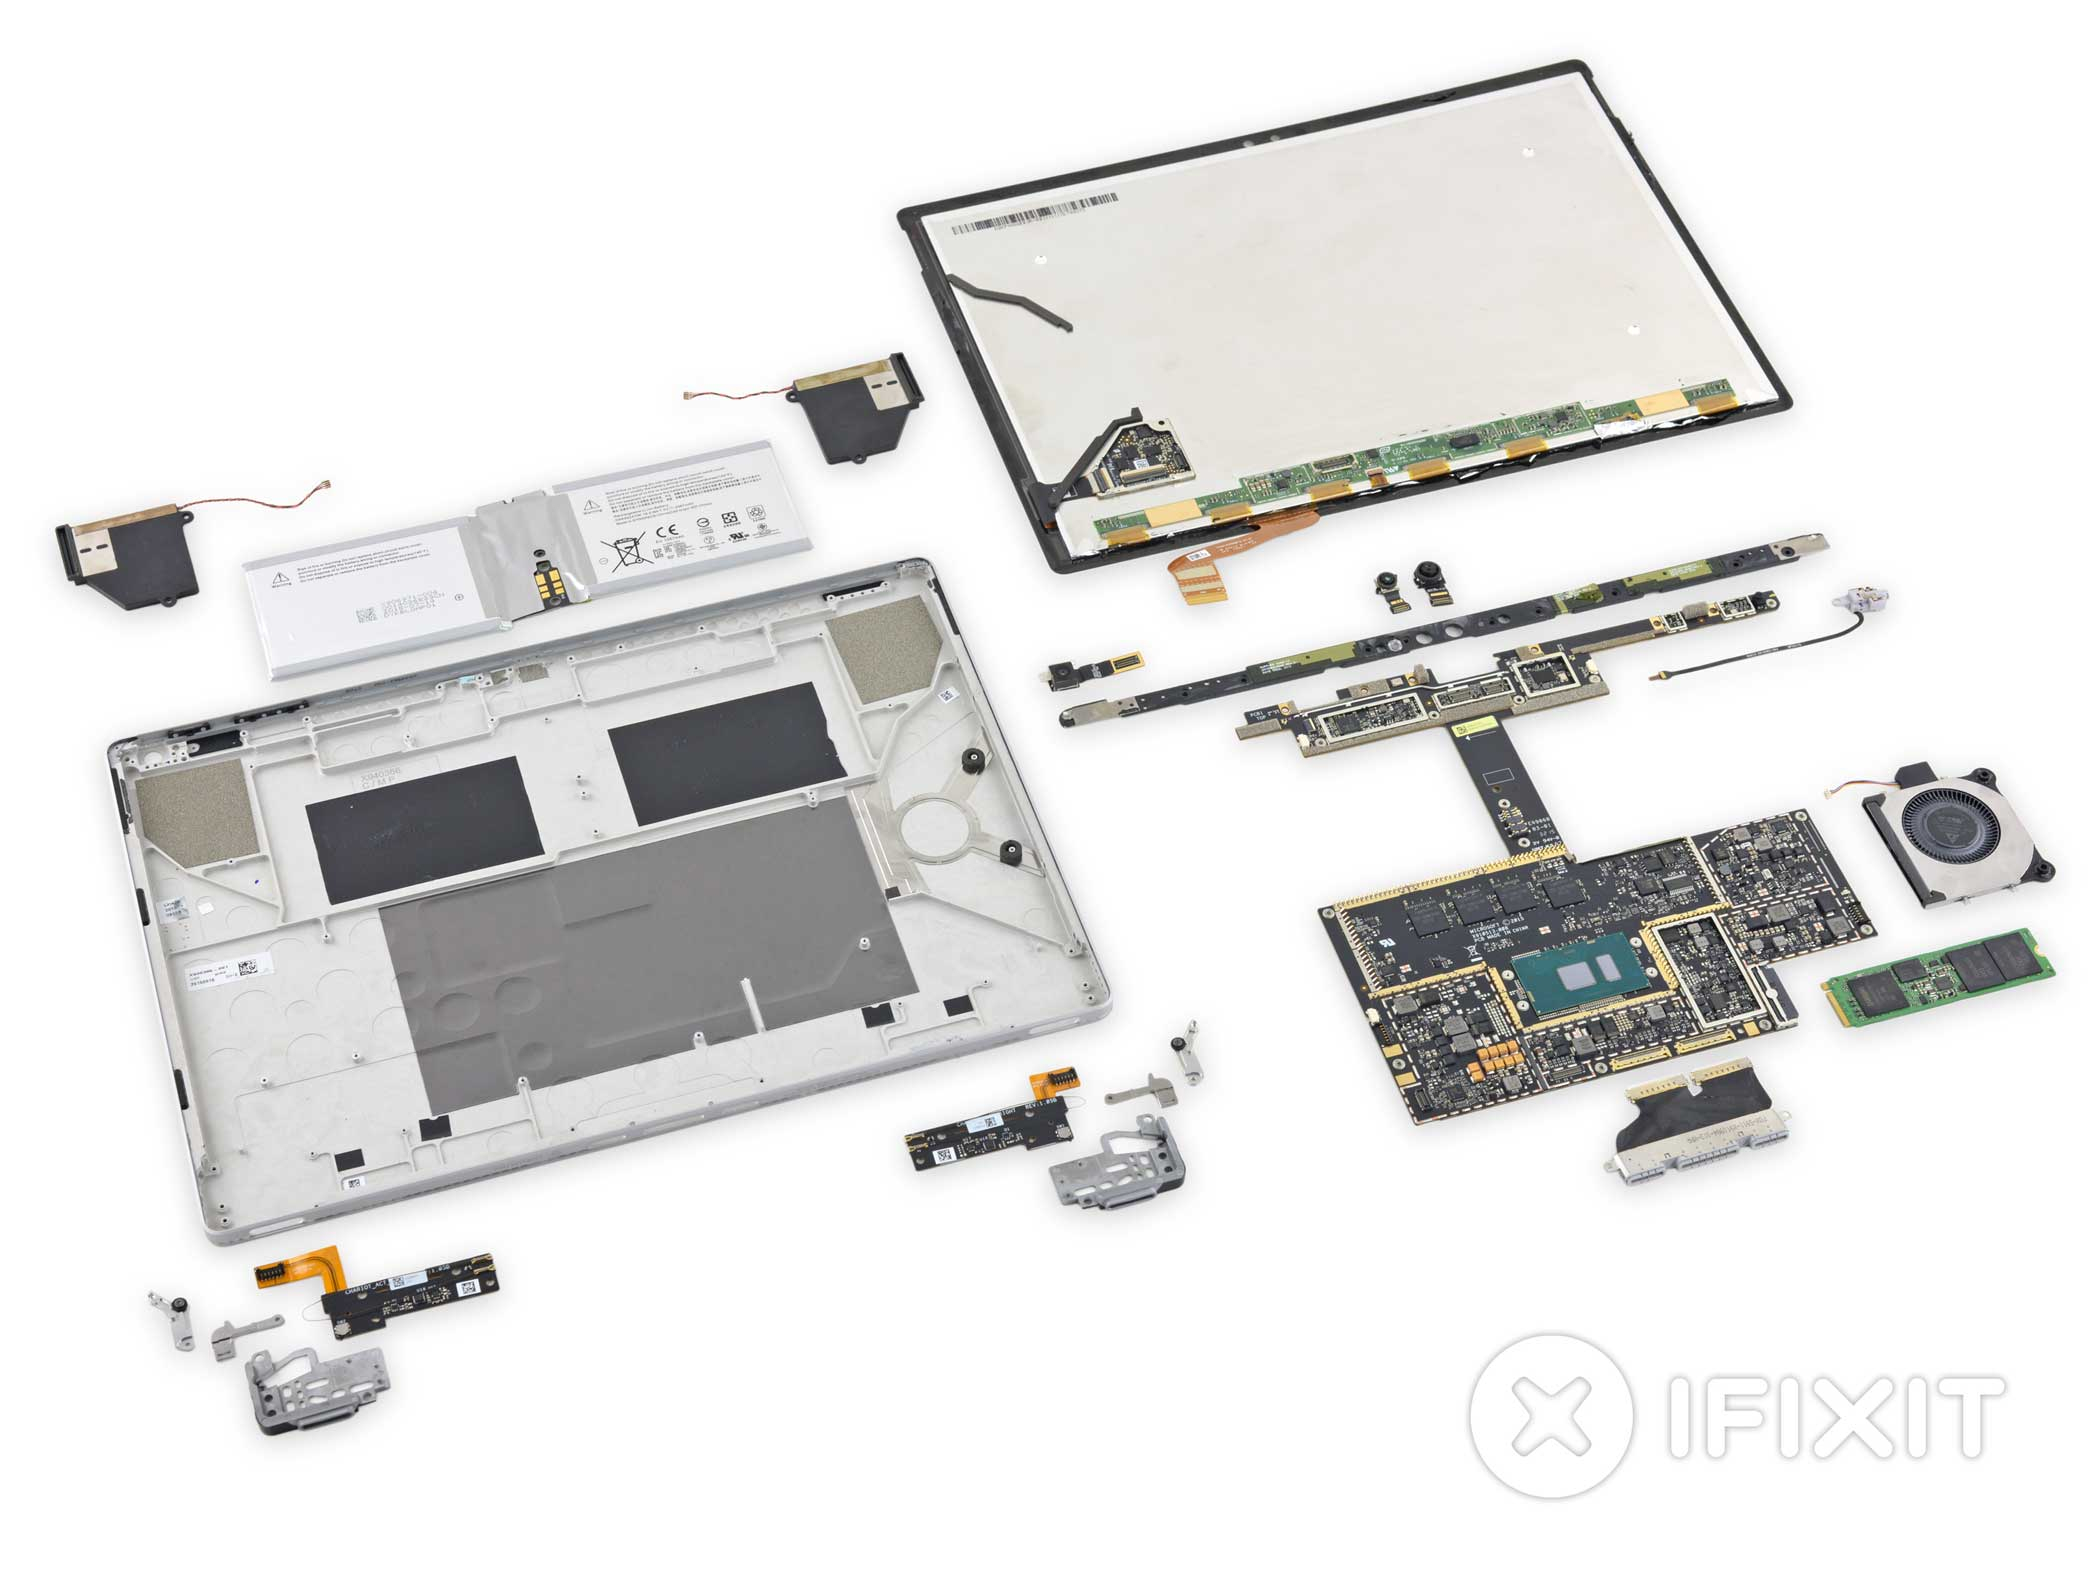 The disassembled Surface Book. iFixIt gave the device a 1 out of 10 on its self-repairability scale.